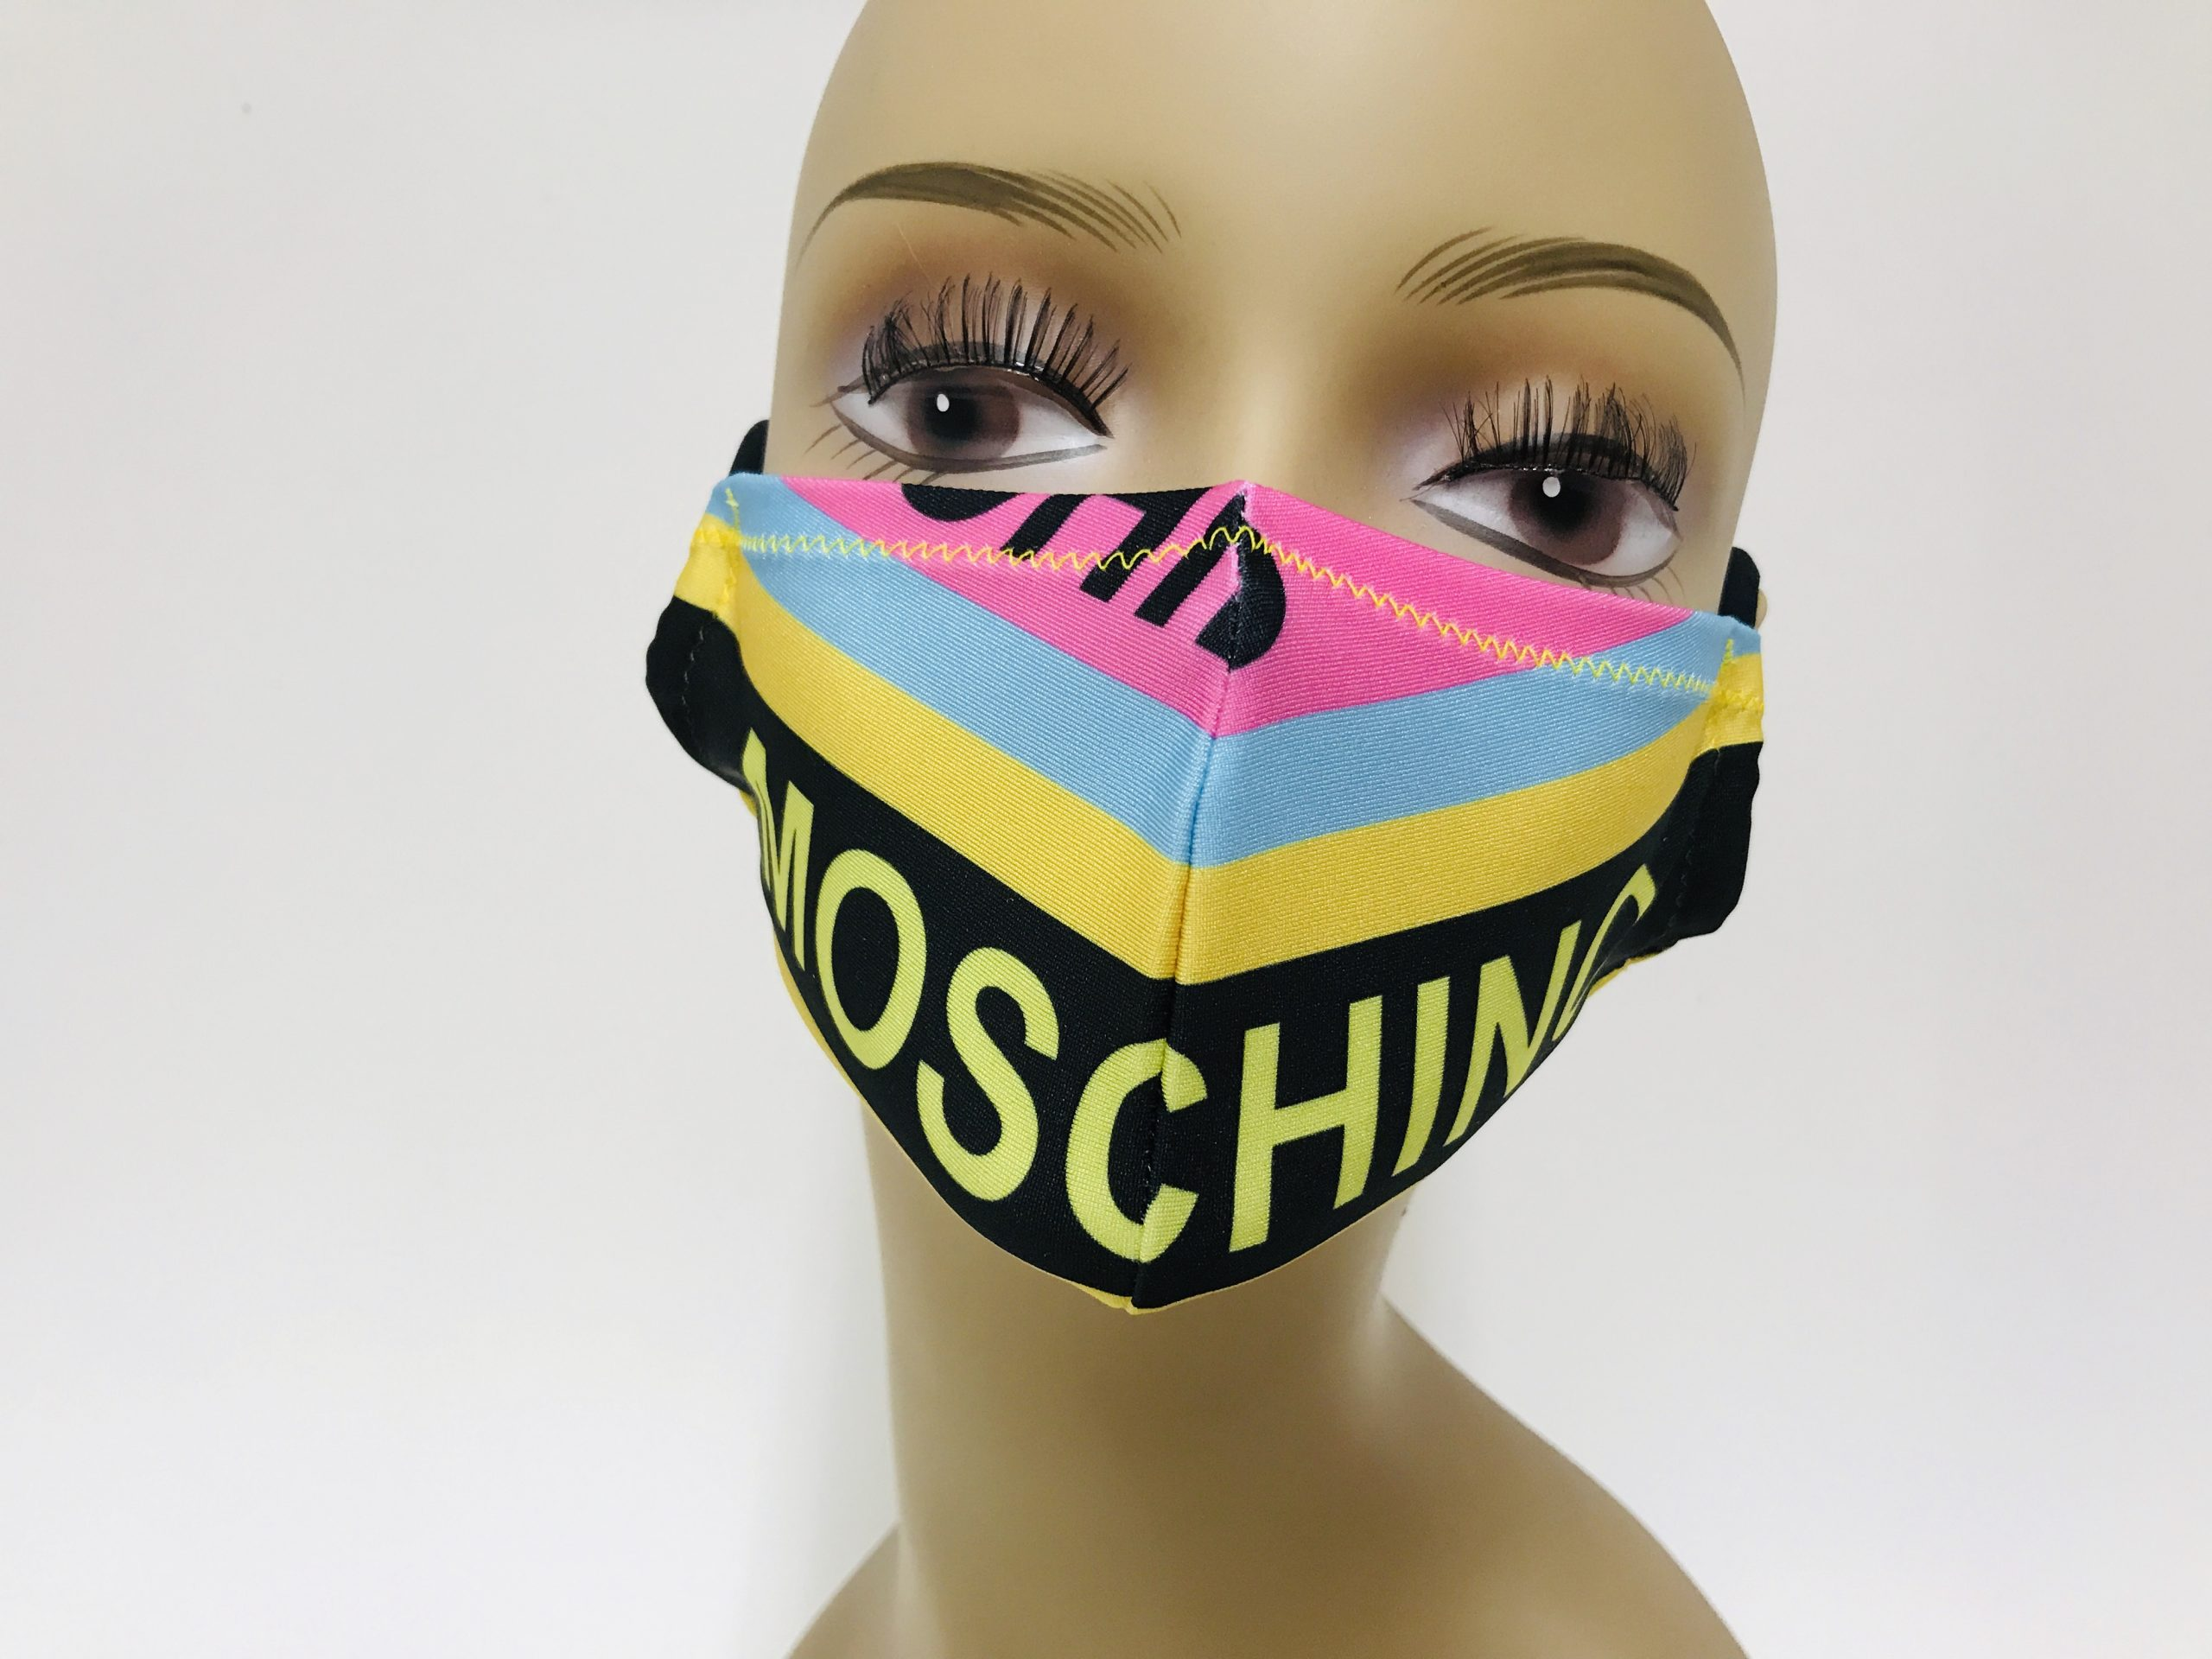 Mosch. Fashion Masks